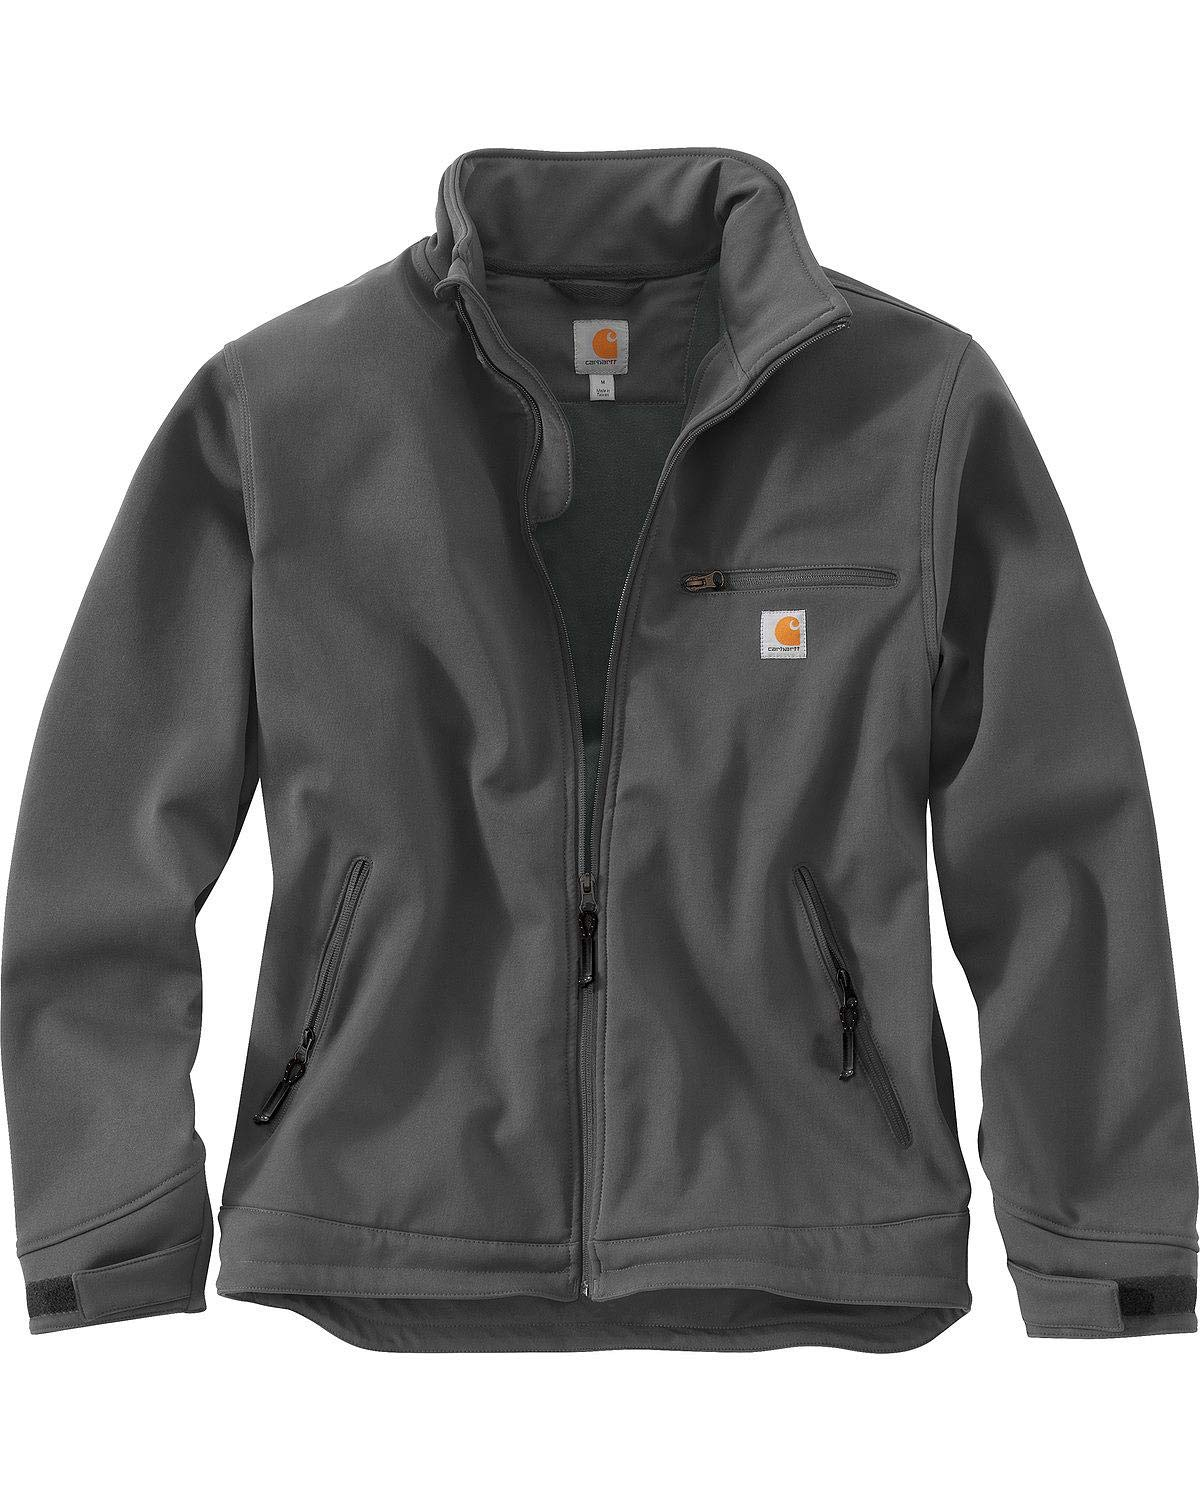 Carhartt Men's Crowley Jacket, Charcoal, Large by Carhartt